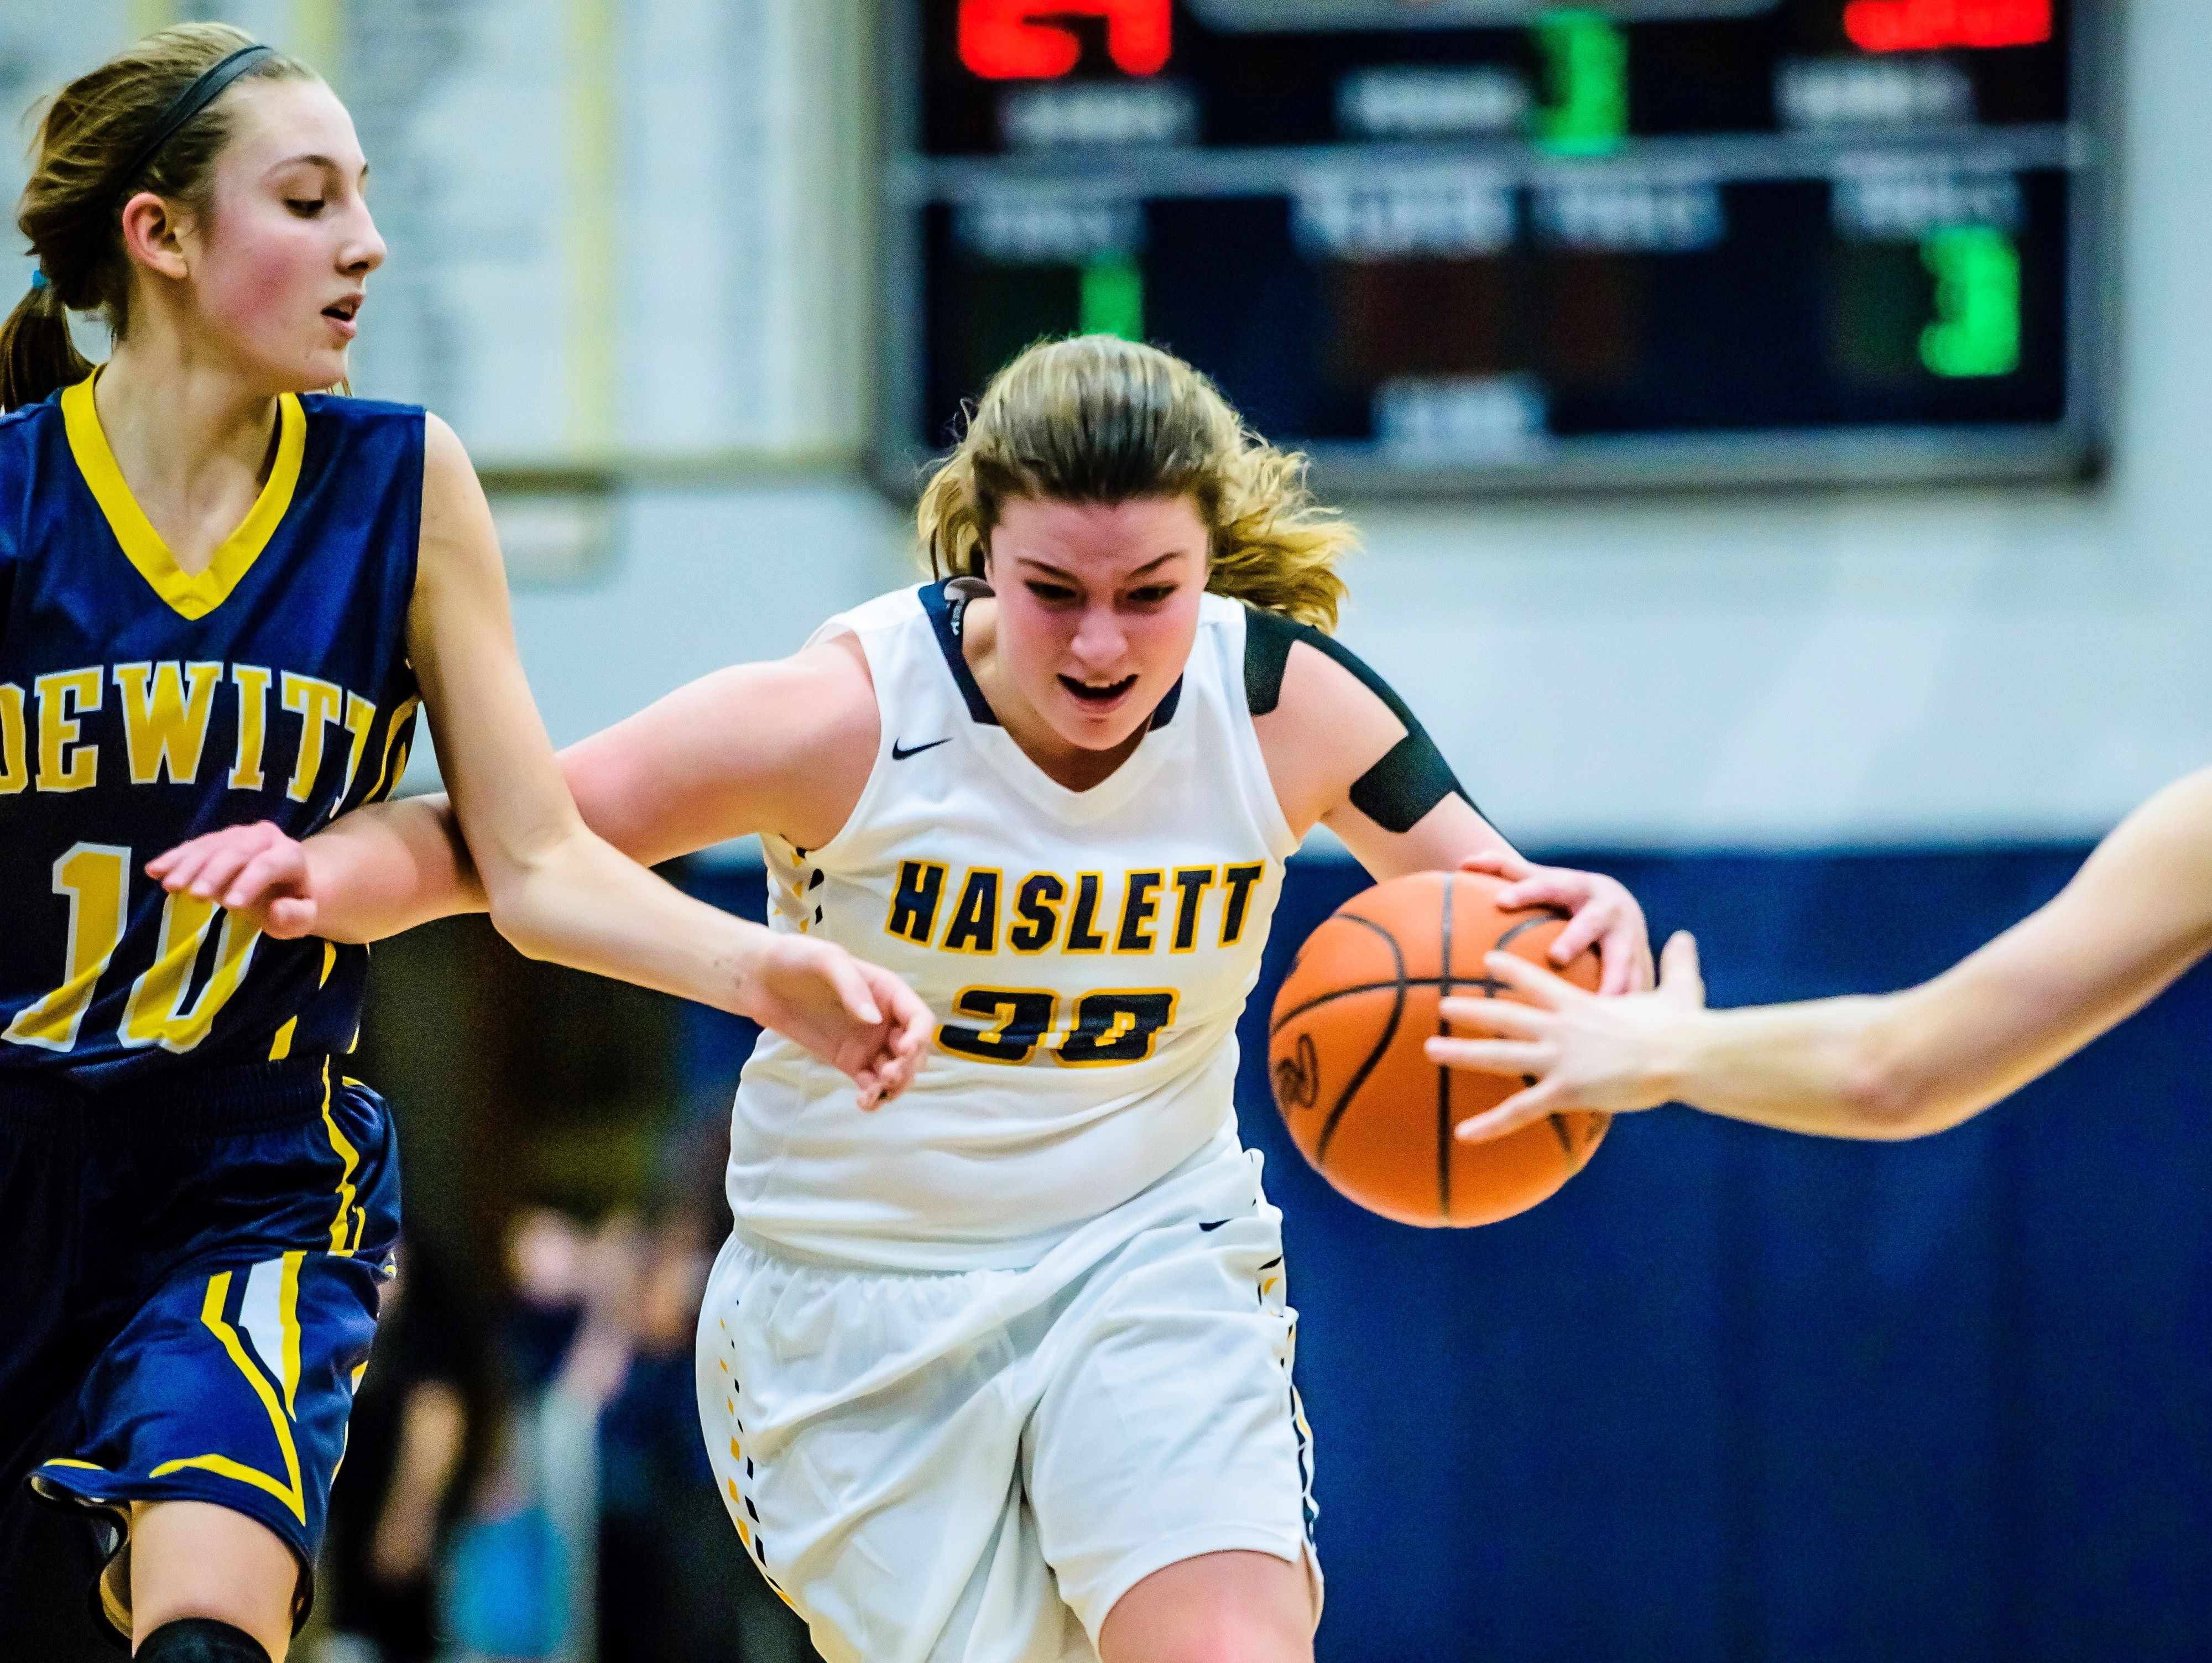 Sydnee Dennis, center, of Haslett drives into the paint while being defended by Sydney Mills ,10, of DeWitt with Haslett trailing by 4 late the 3rd quarter of their game Friday February 17, 2017 in Haslett.